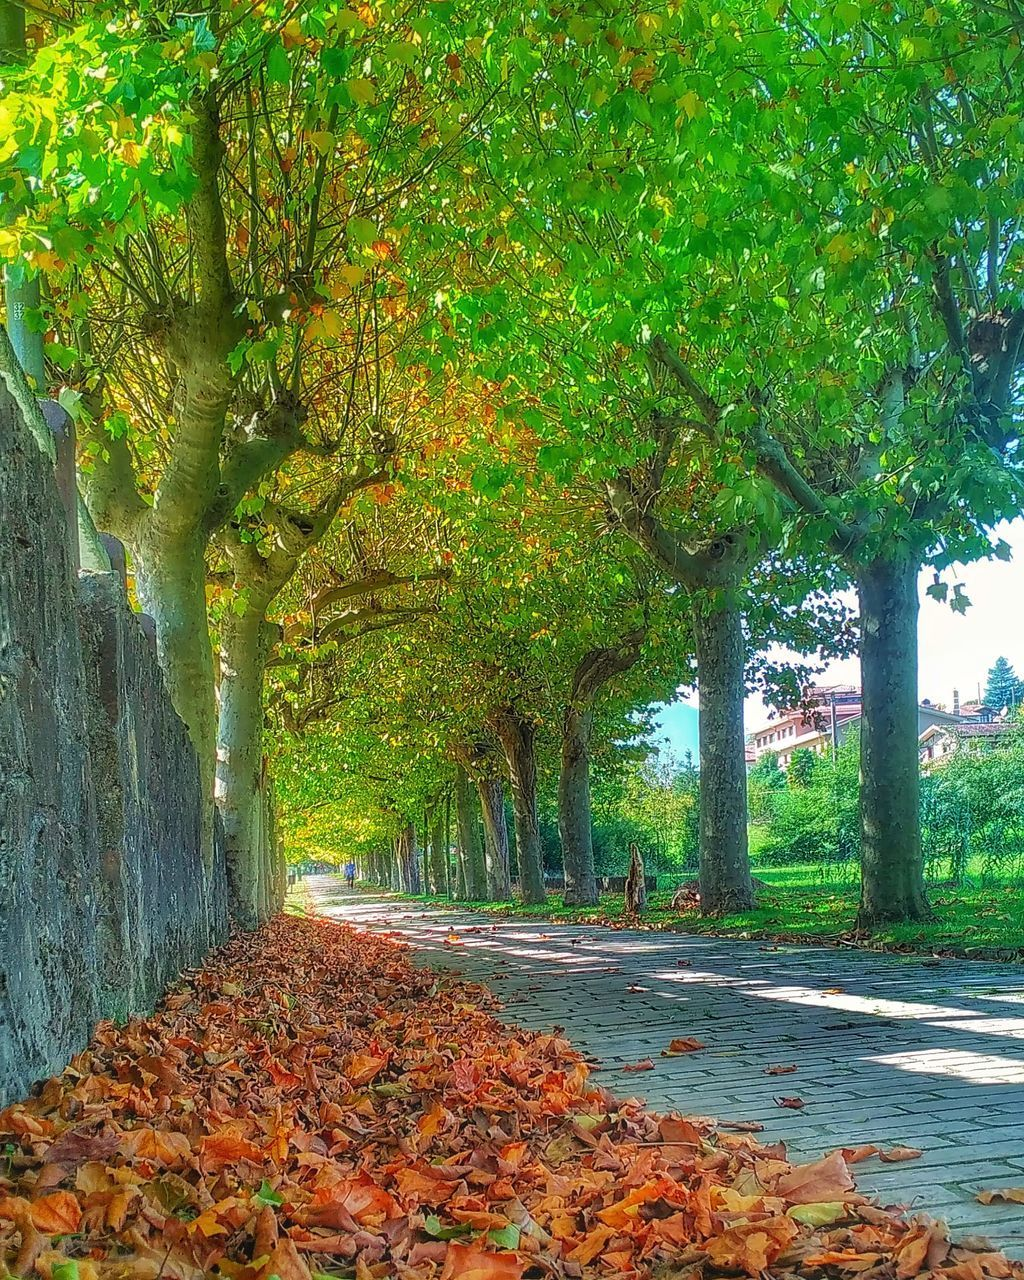 tree, plant, autumn, change, growth, the way forward, leaf, plant part, direction, footpath, tree trunk, trunk, nature, beauty in nature, park, day, road, no people, tranquility, green color, treelined, outdoors, diminishing perspective, leaves, autumn collection, fall